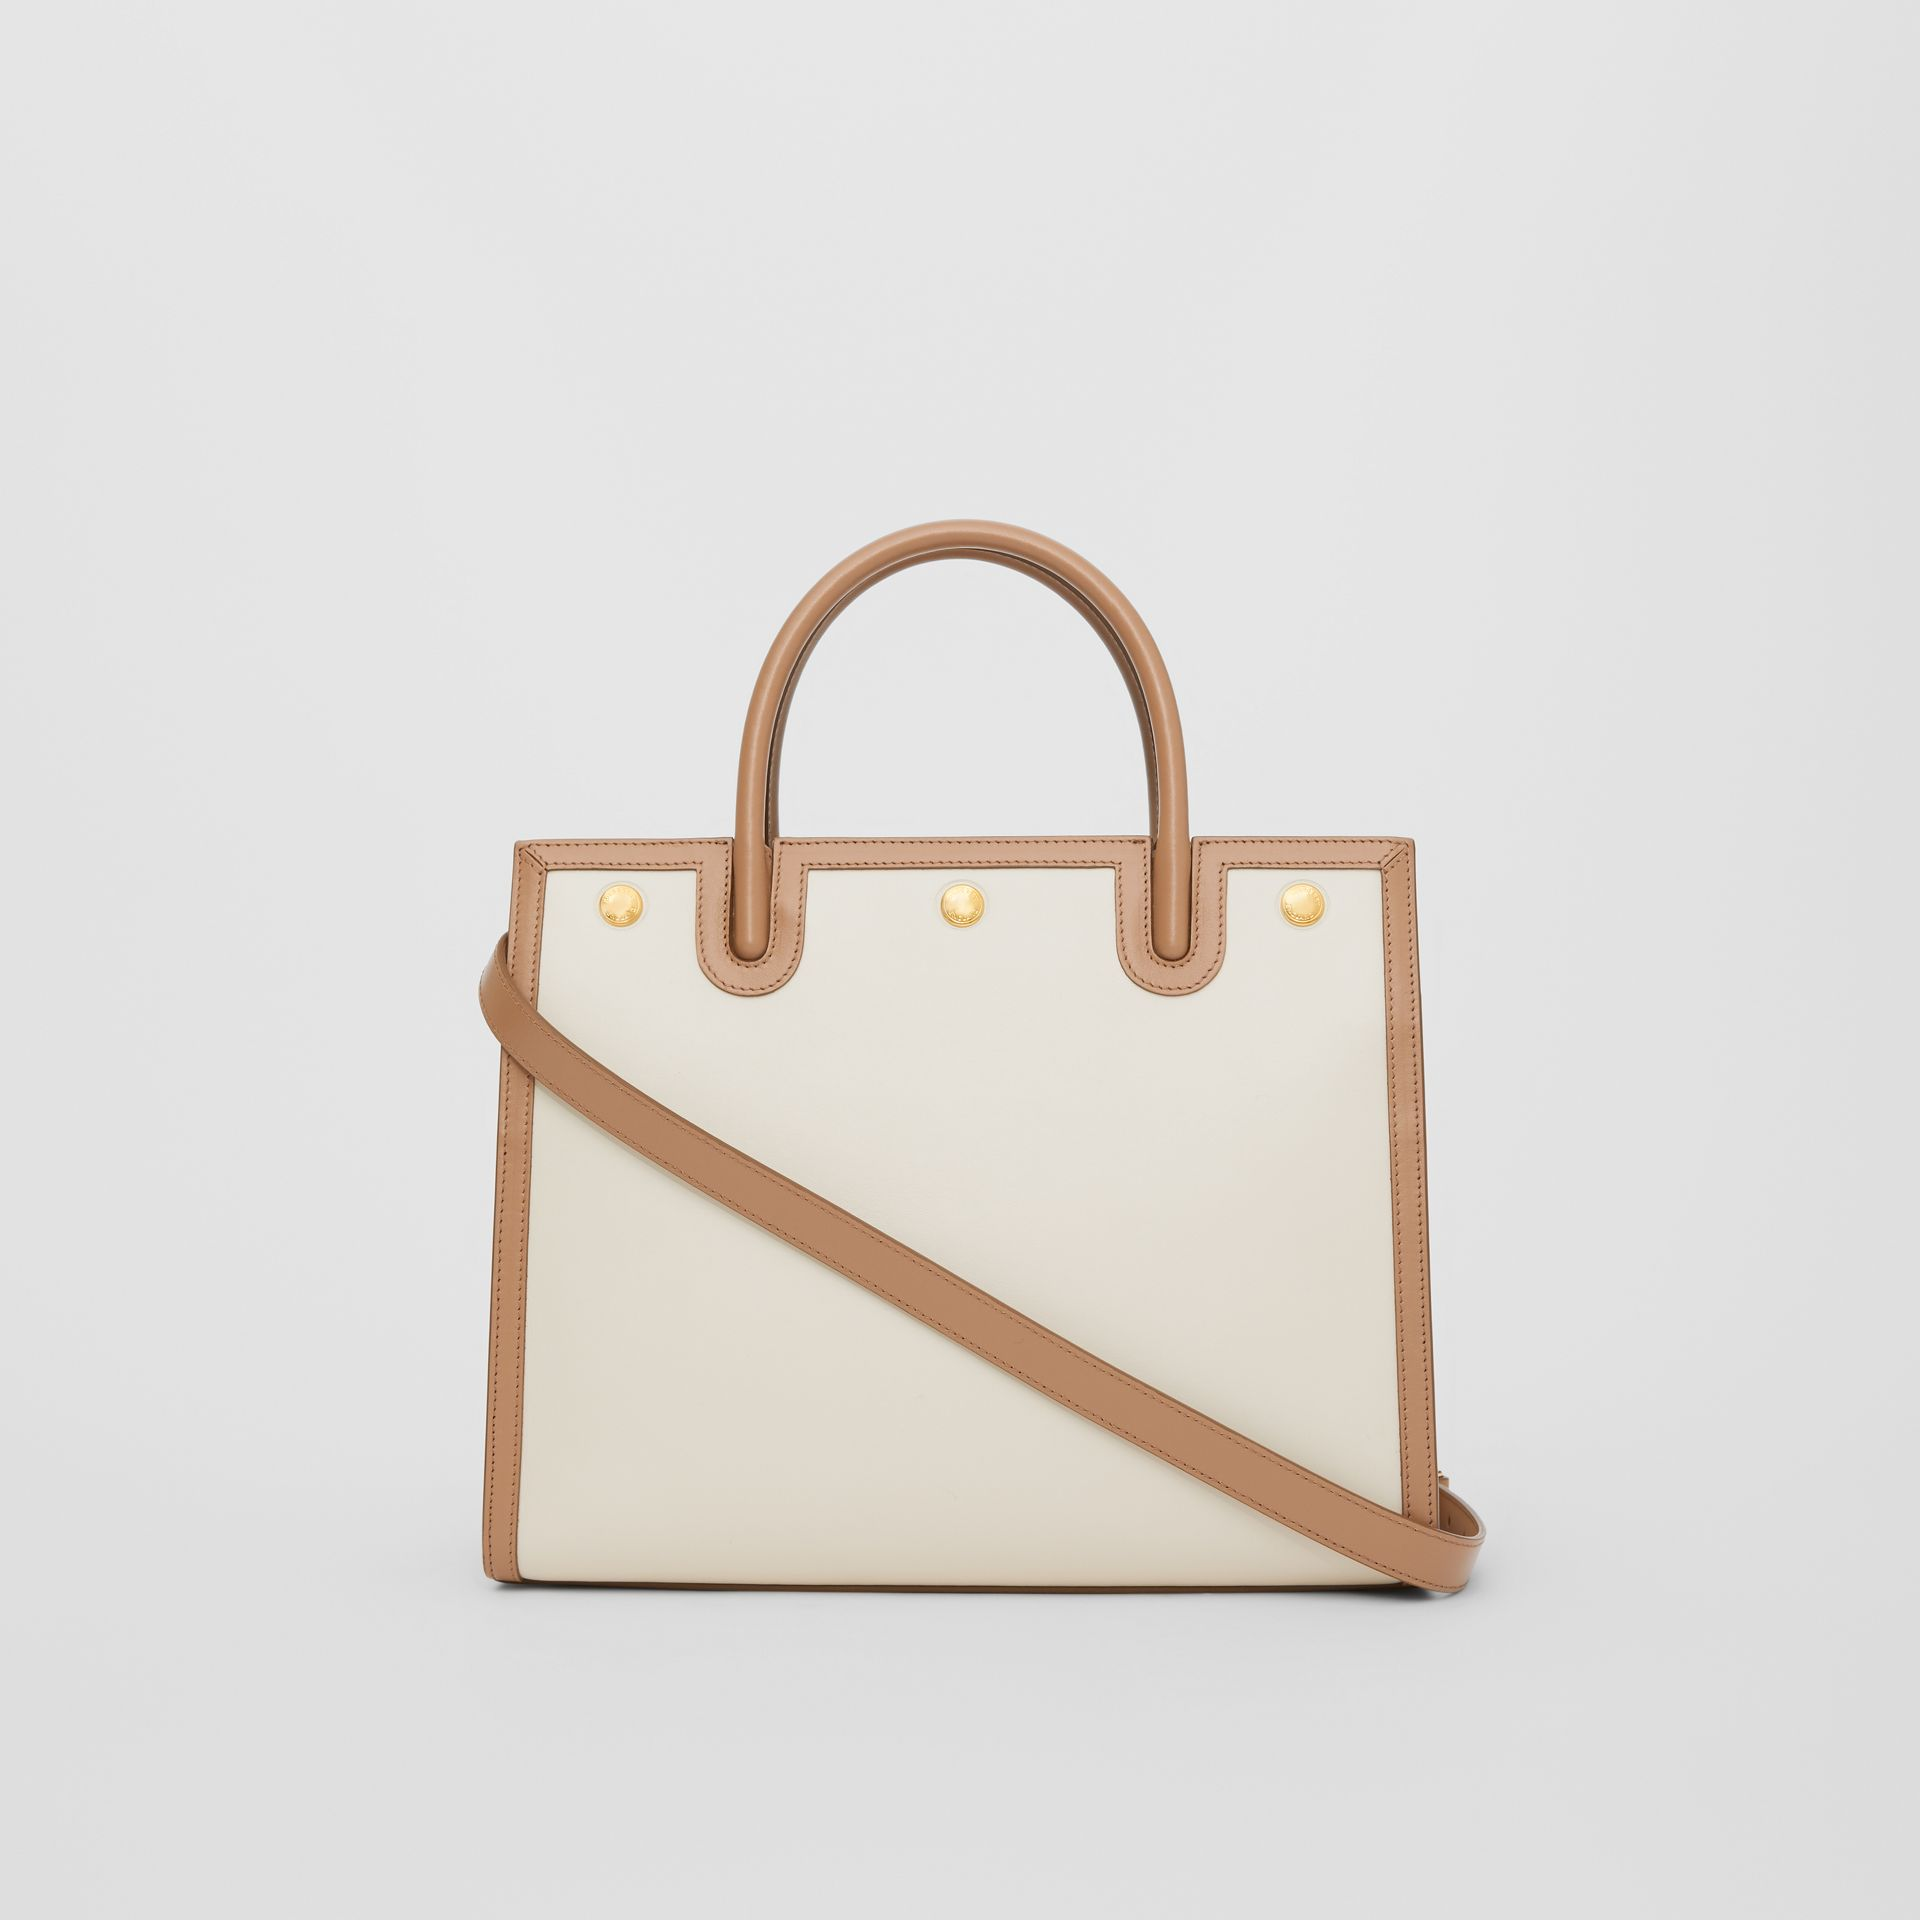 Small Leather Two-handle Title Bag in Buttermilk/camel - Women | Burberry Canada - gallery image 7